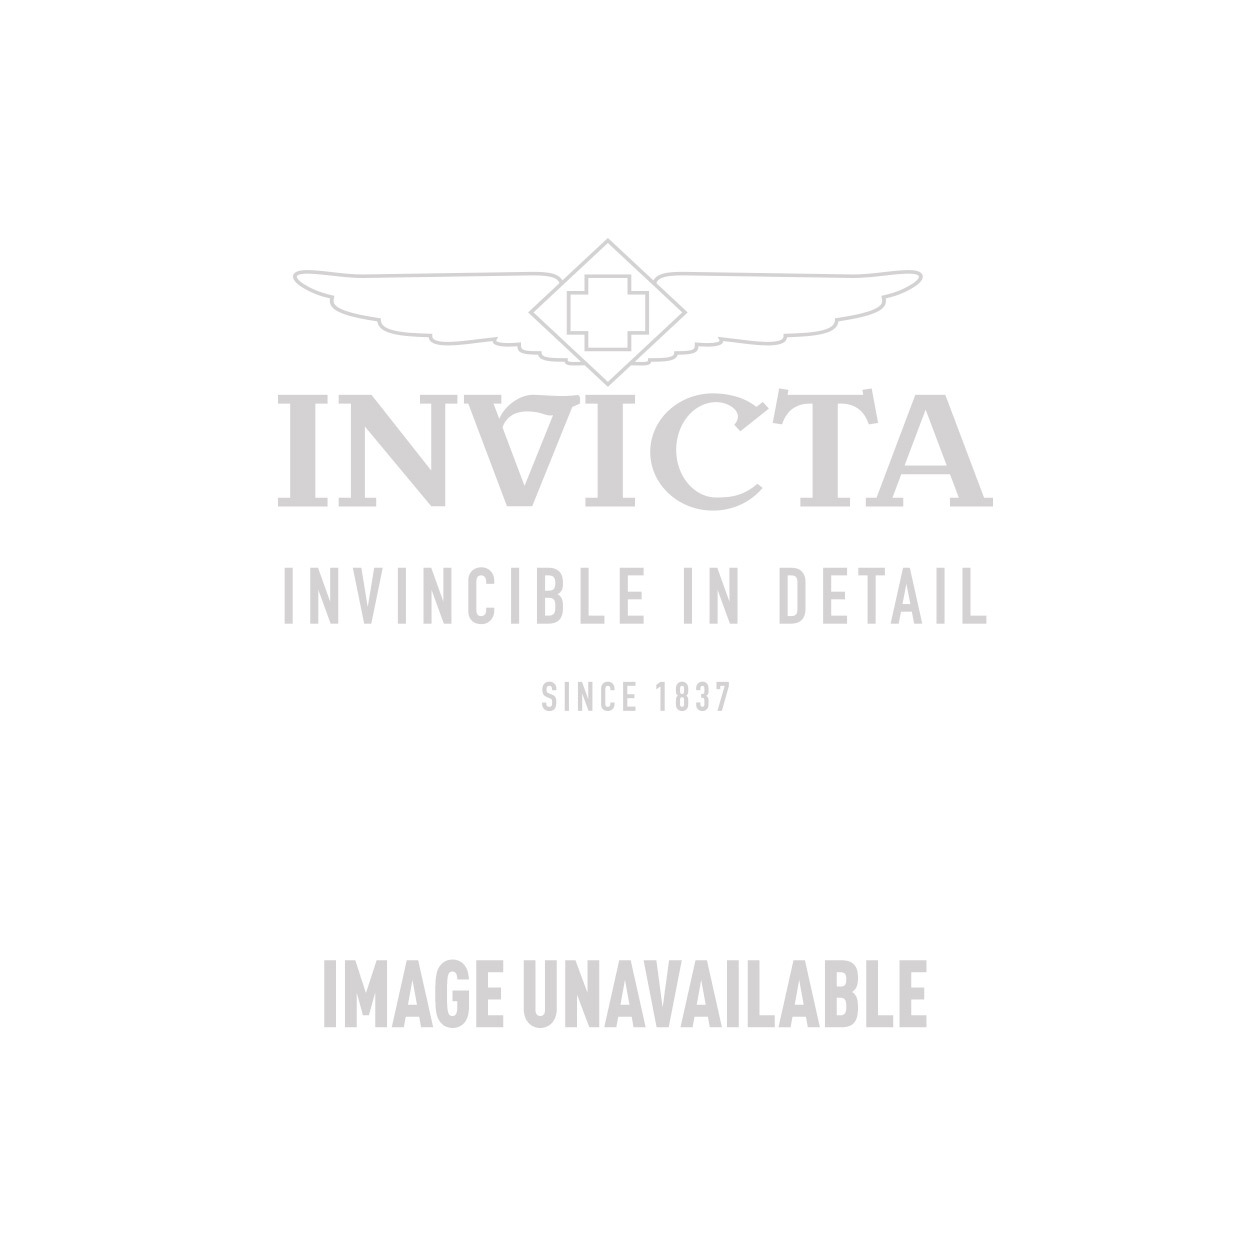 Invicta Specialty Swiss Movement Quartz Watch - Stainless Steel case with Brown tone Leather band - Model 11185